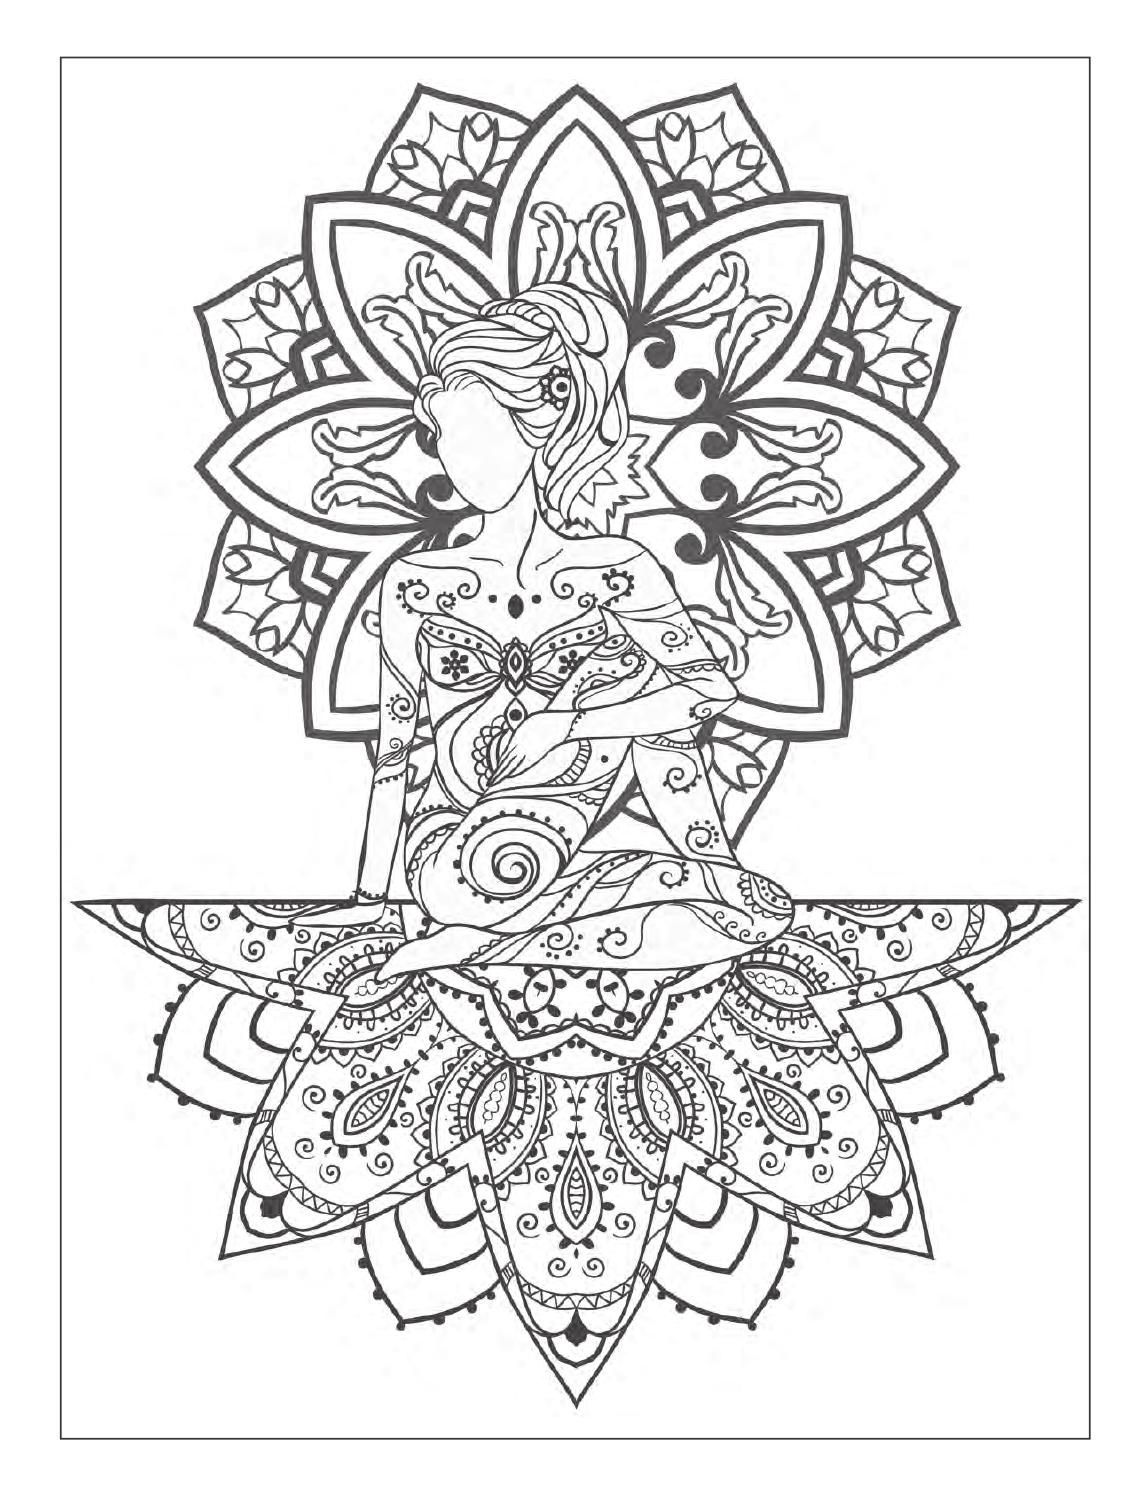 yoga and meditation coloring book for adults with yoga poses and mandalas yoga poses. Black Bedroom Furniture Sets. Home Design Ideas